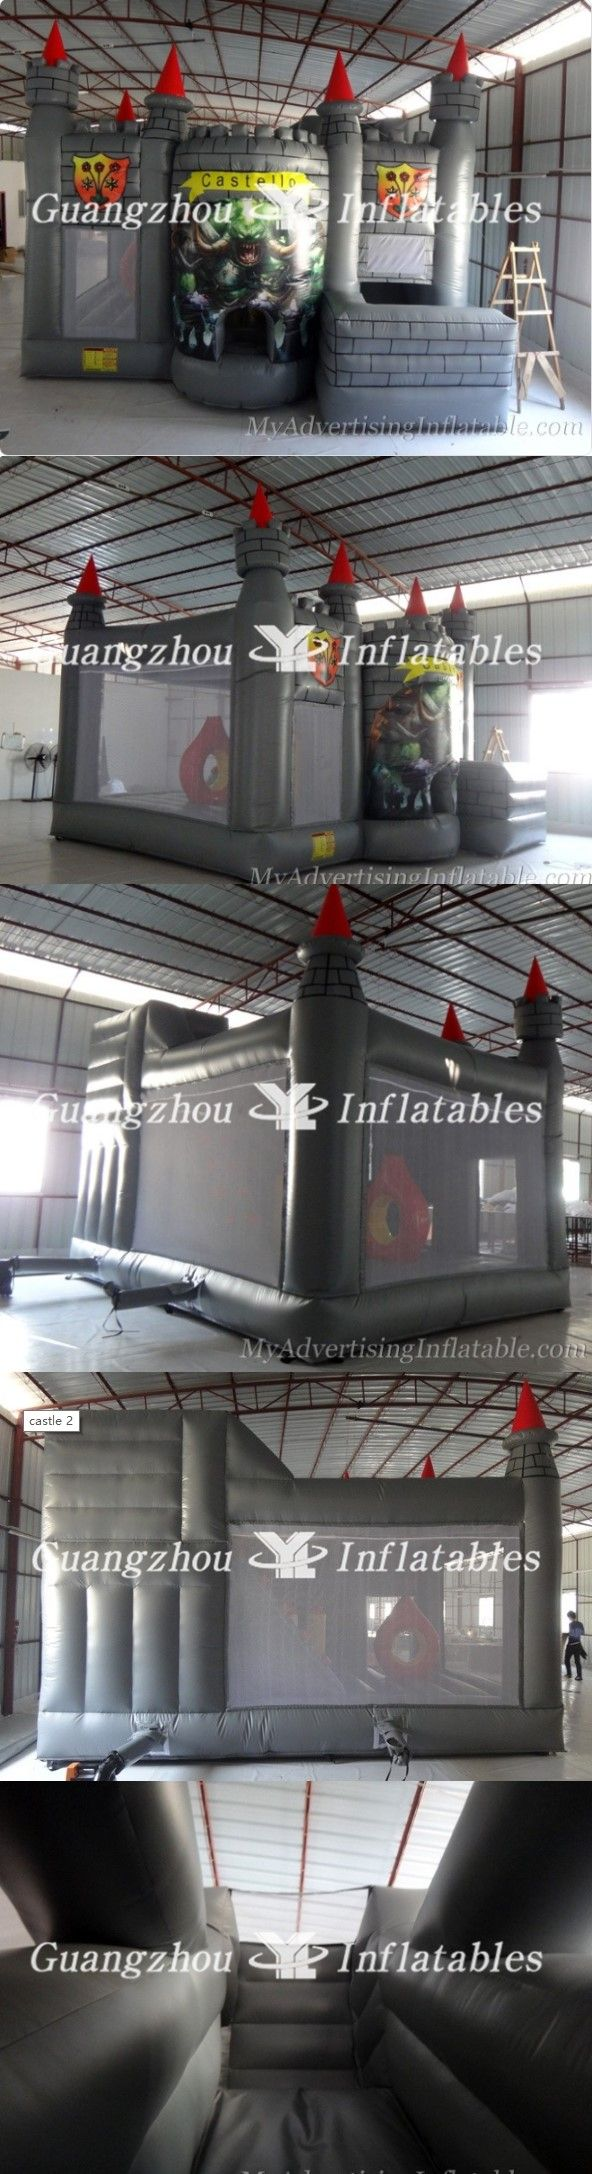 New Arrival!! Do you like it? Pls feel free to contact us. Skype&Facebook: Elin YL Inflatables #inflatable #inflables #combos #bouncer #slide #game #juegos #entertainment #kids #newyear #havefun #fun